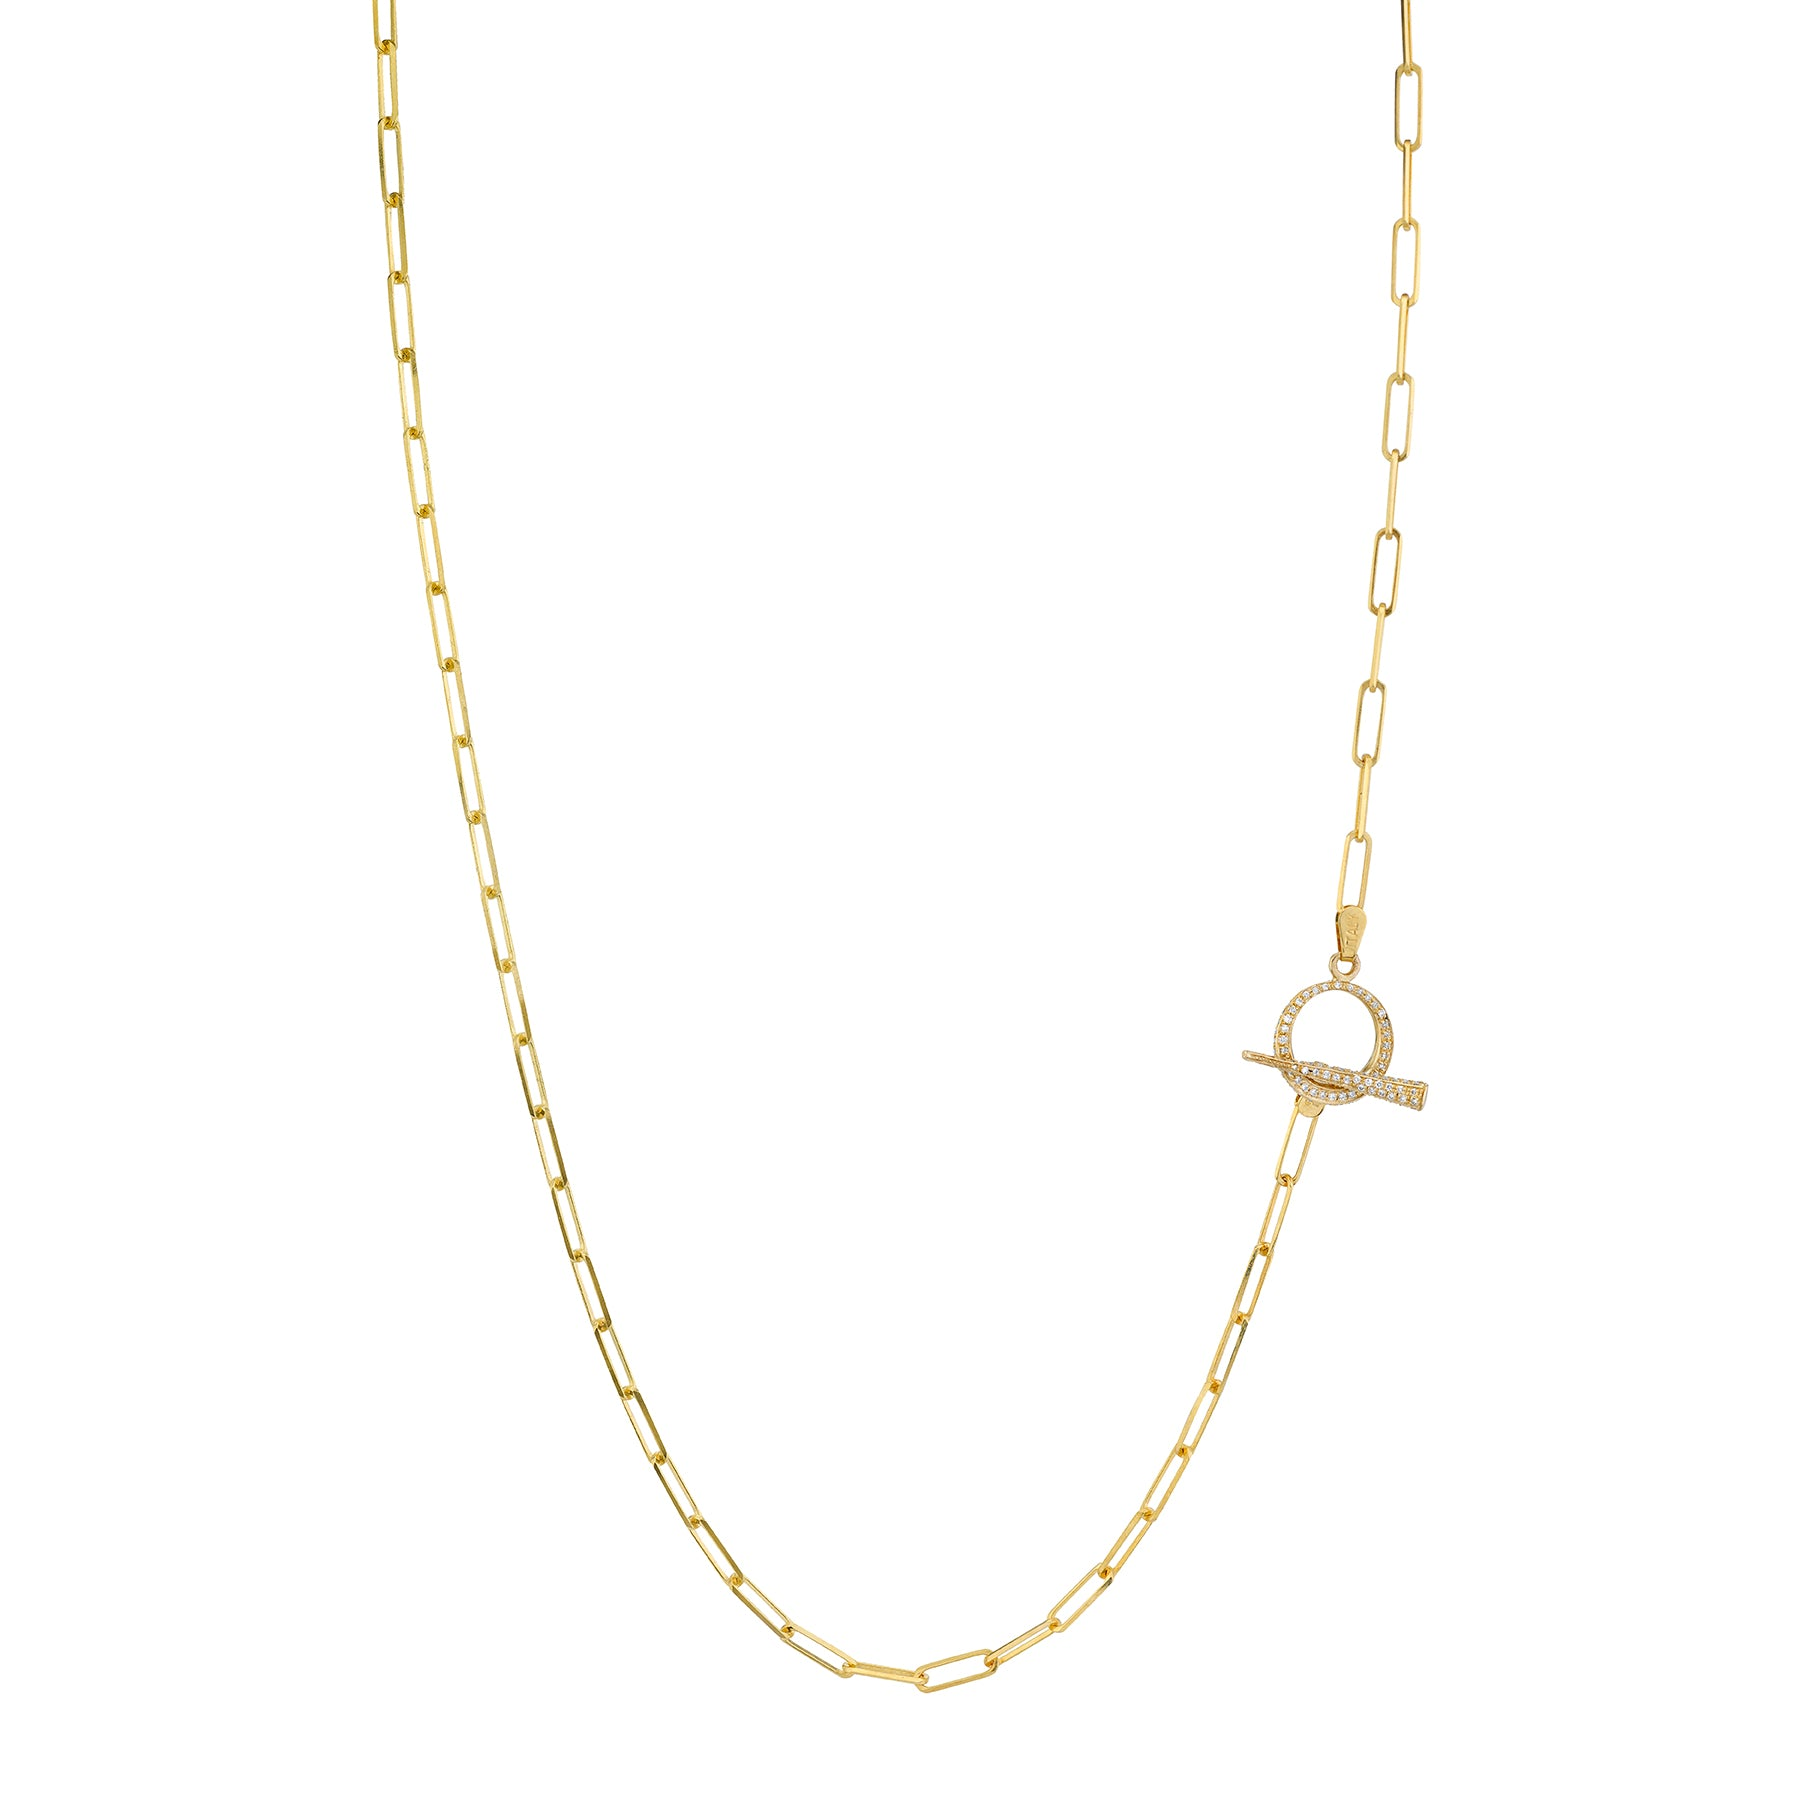 Thin Rectangular Link Lariat With White Pavé Diamonds Tusk Clasp - Gabriela Artigas